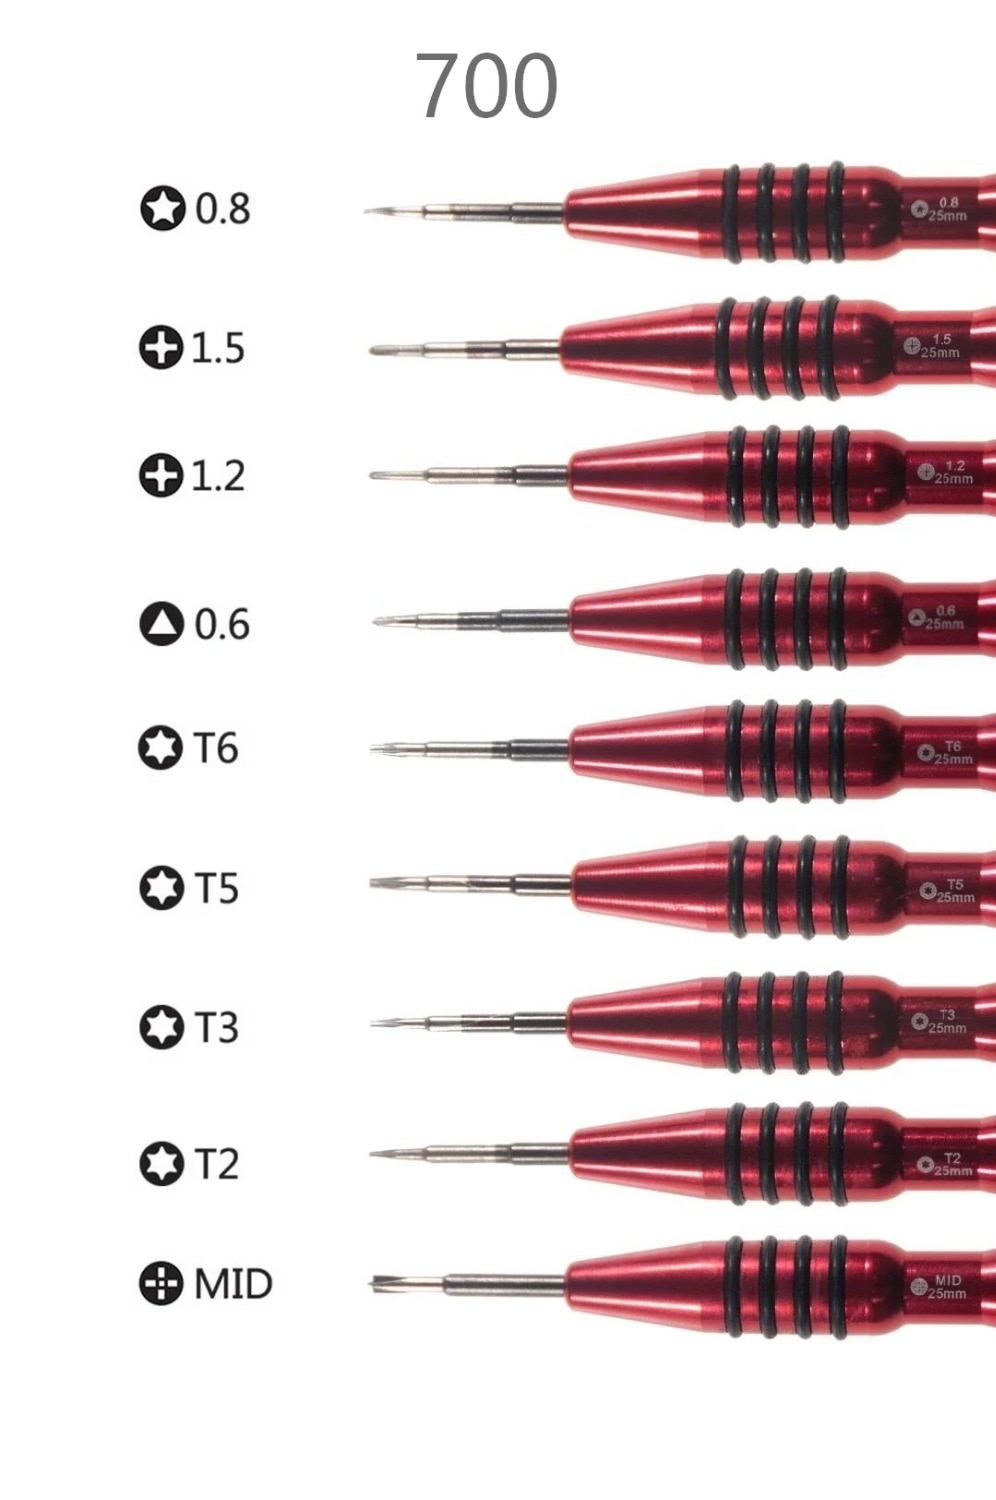 High Quality Professional Mobile Phone Repair Screwdriver for Smart Phone Disassemble Opening tool